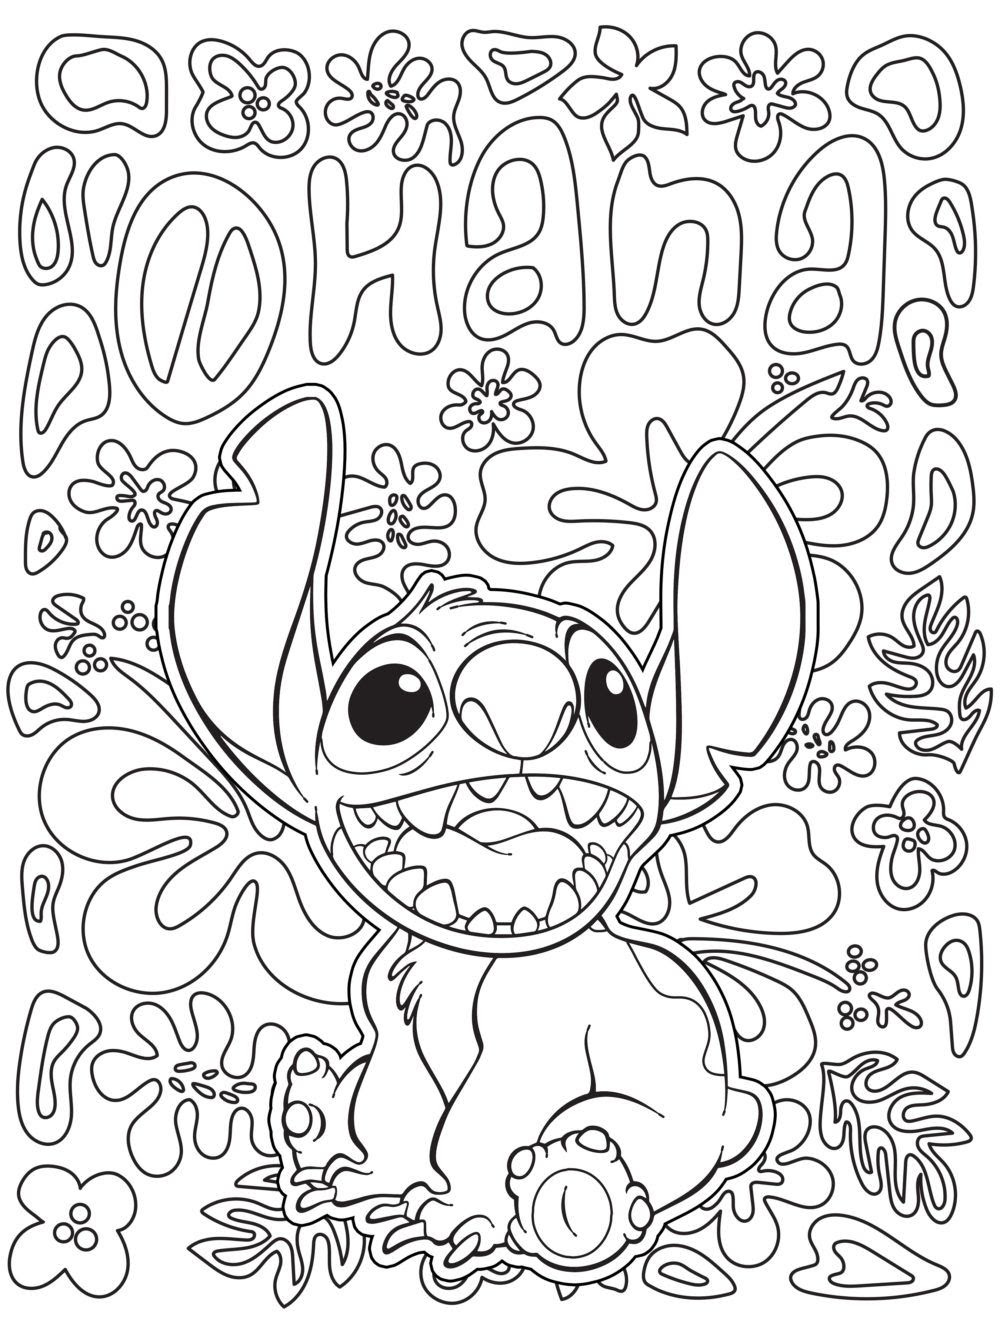 Disney Coloring Pages Lilo And Stitch At Getdrawingscom Free For